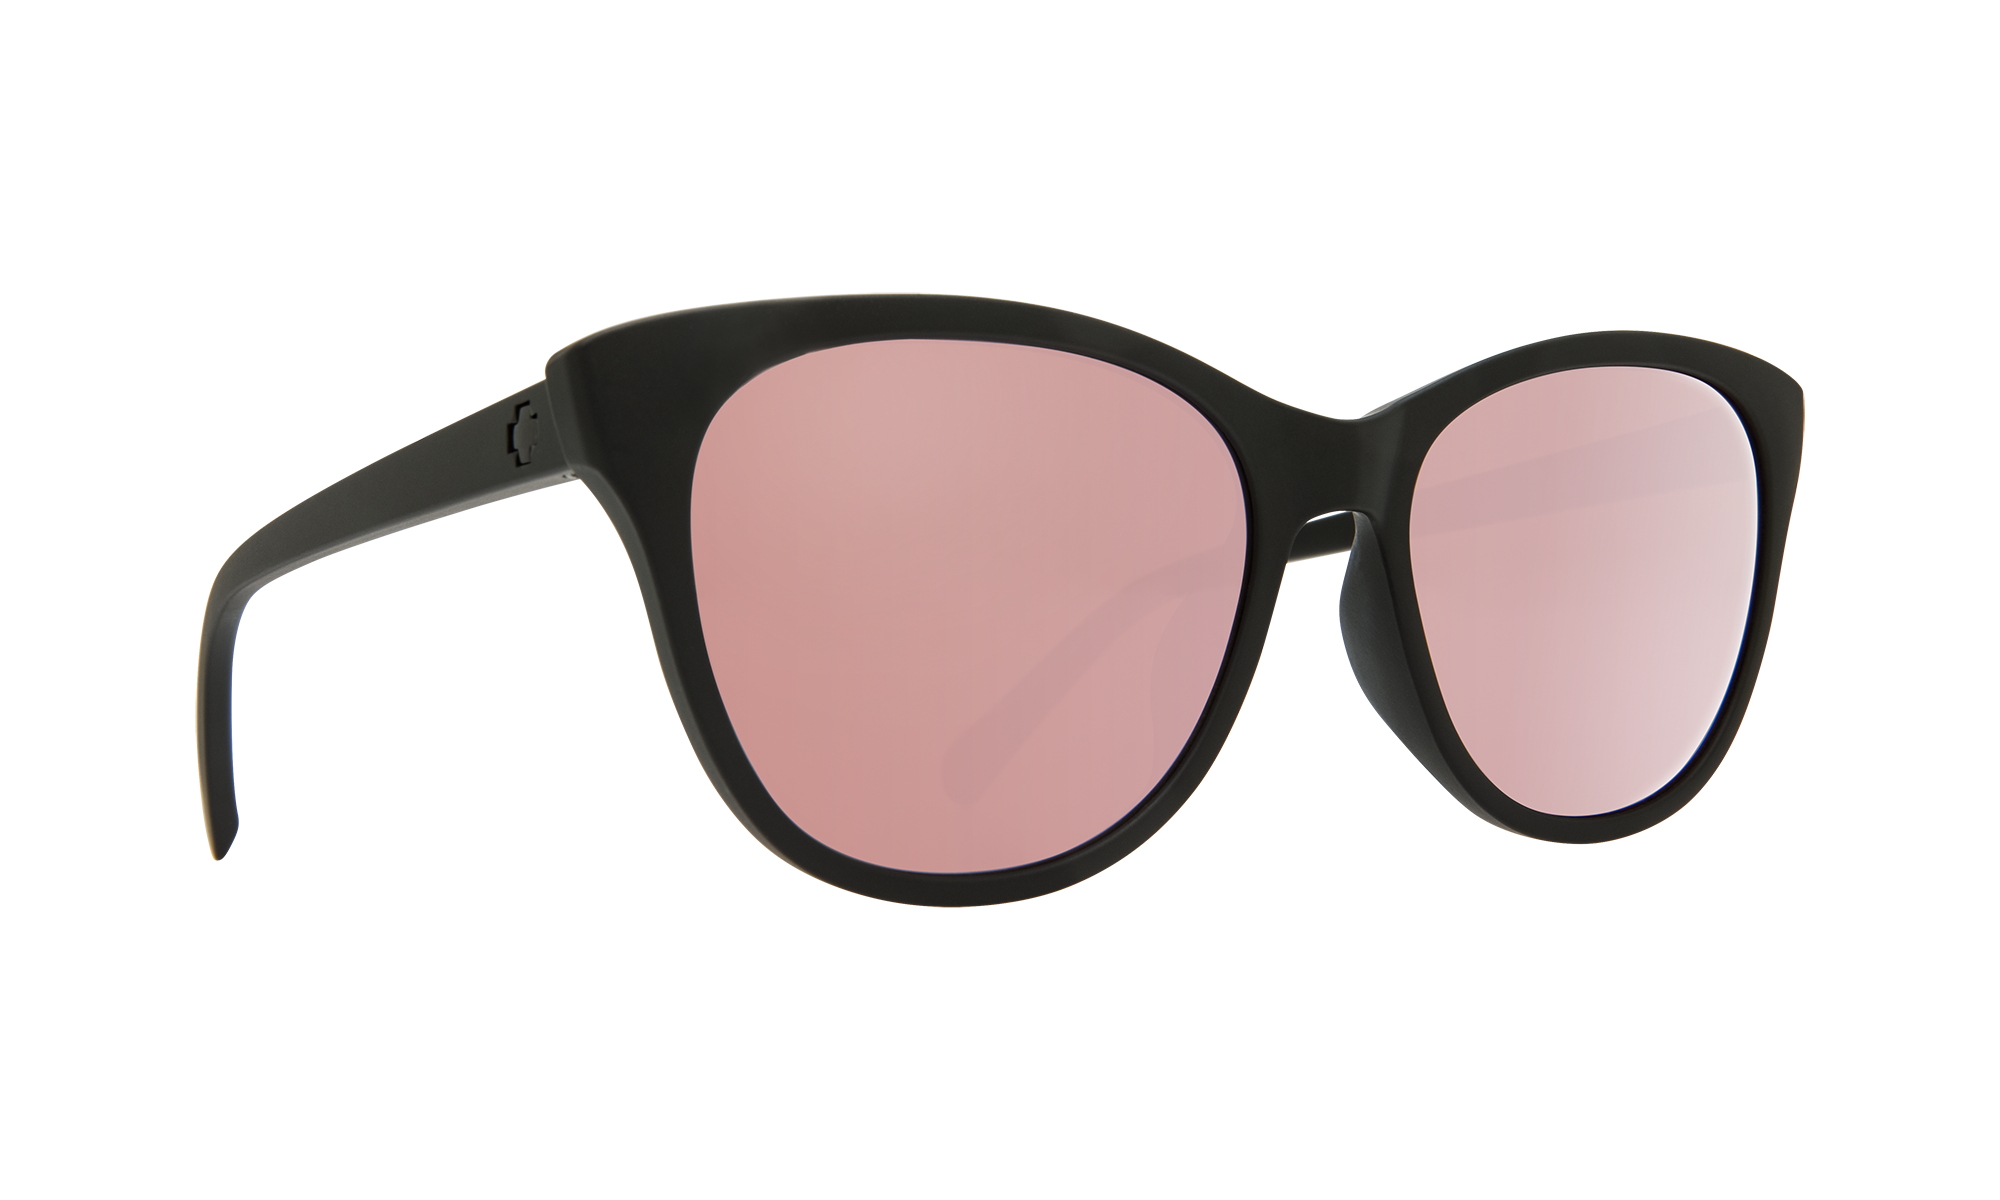 itemDesc SPRITZER MATTE BLACK - BRONZE W/ROSE QUARTZ SPECTRA is not available for this combination